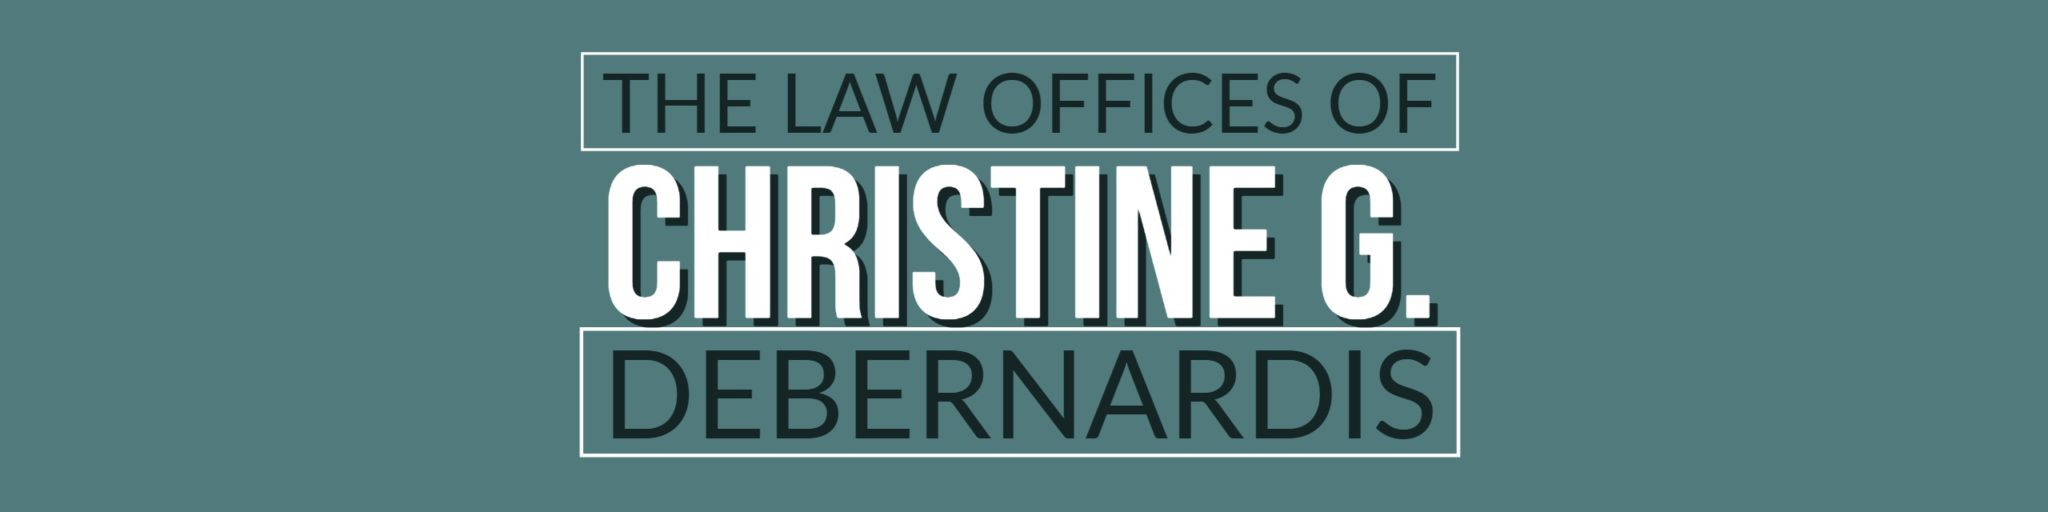 The law offices of christine g debernardis esq experience pin it on pinterest solutioingenieria Images